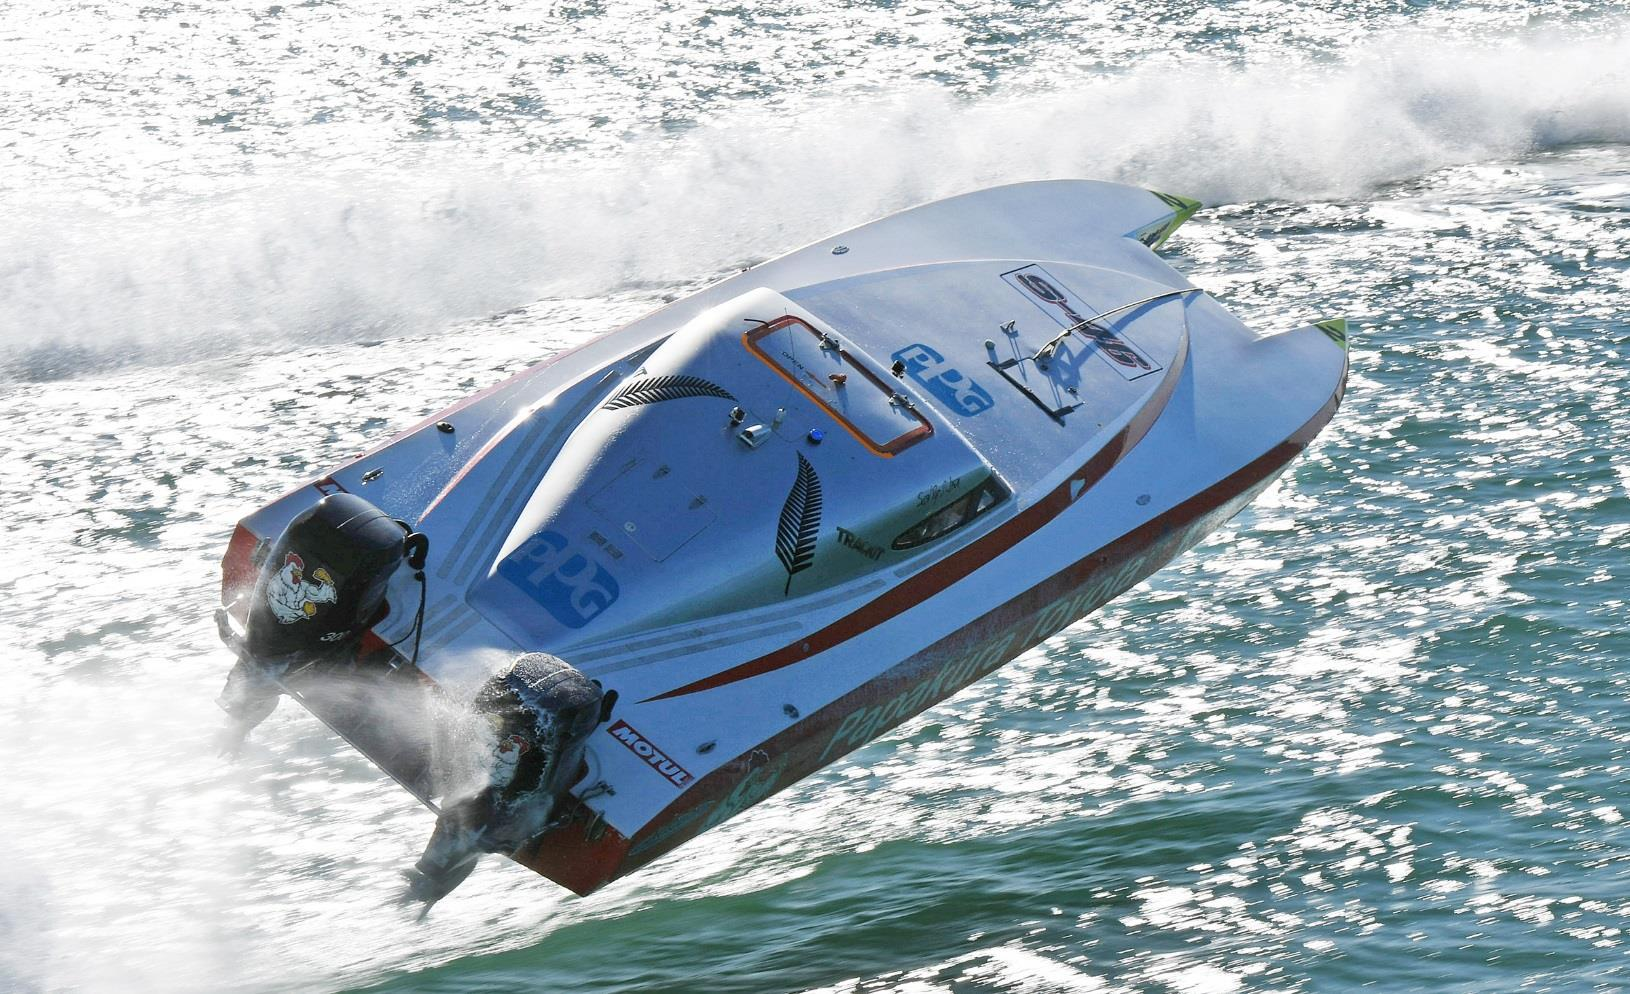 JEREMY WARD (New Zeland) NZ Offshore Powerboat Series, R7 Whitianga, New Zealand on the 13th May 2017